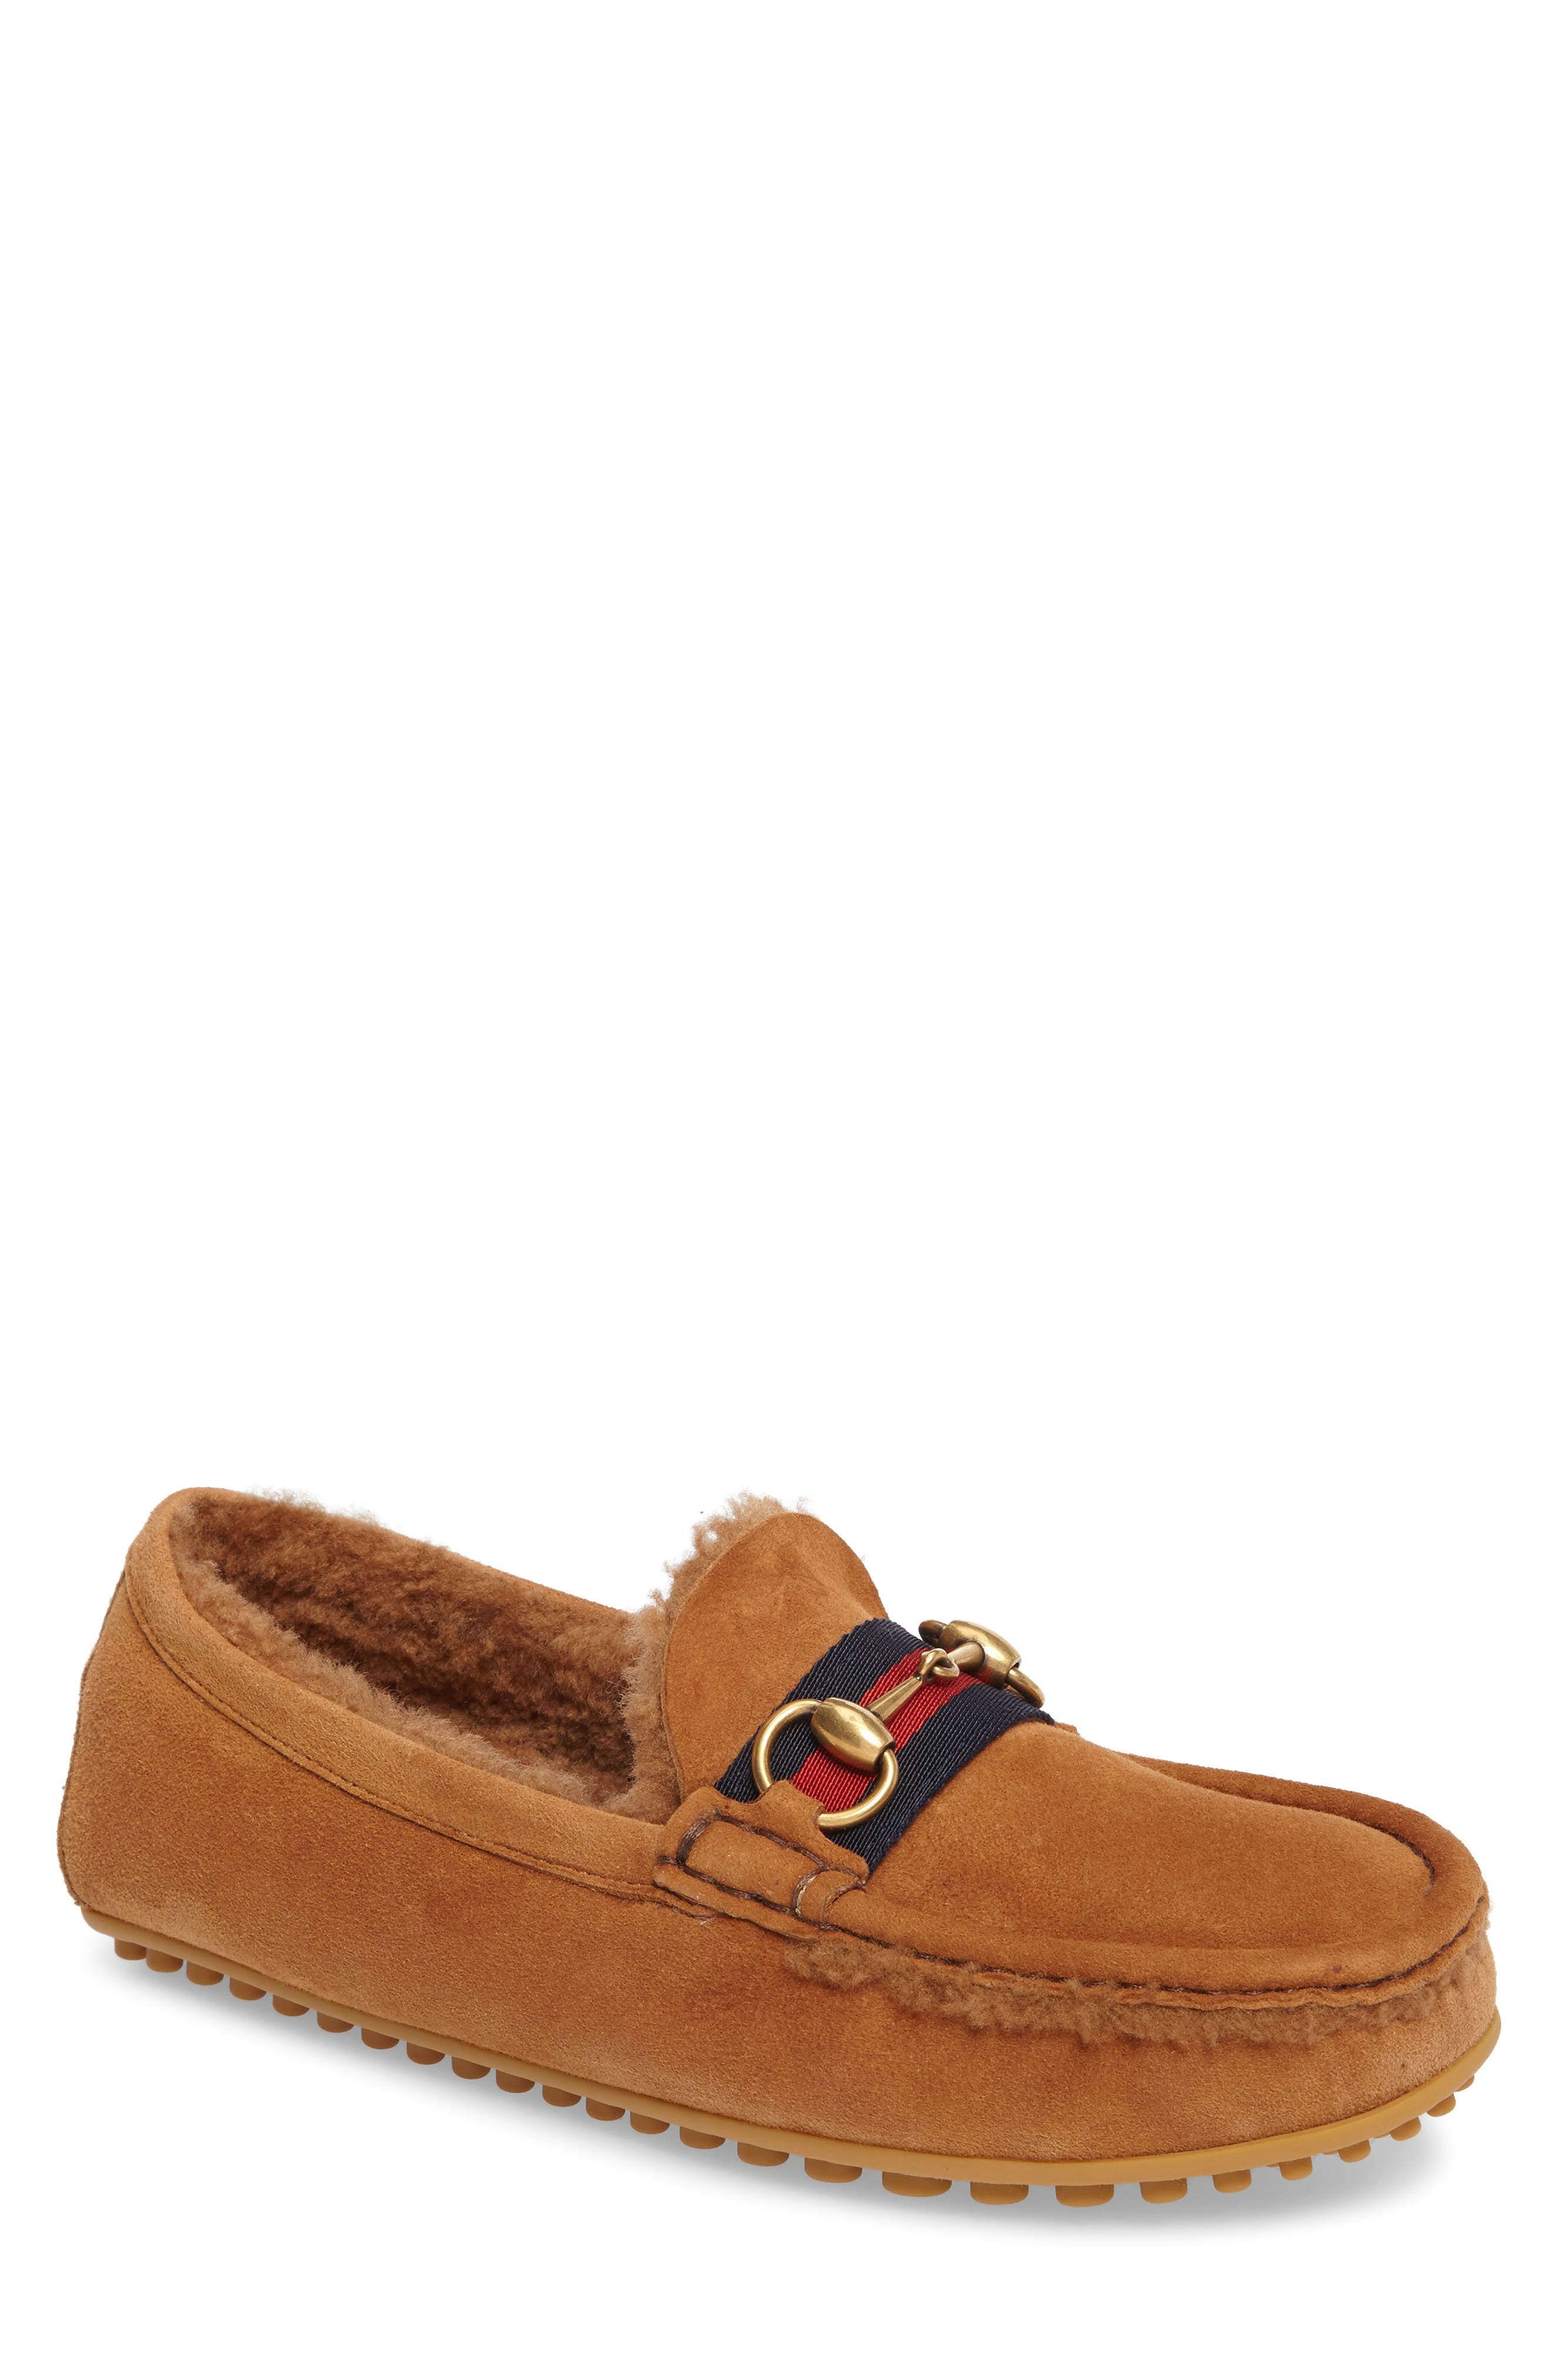 Driving Shoe with Genuine Shearling,                             Main thumbnail 1, color,